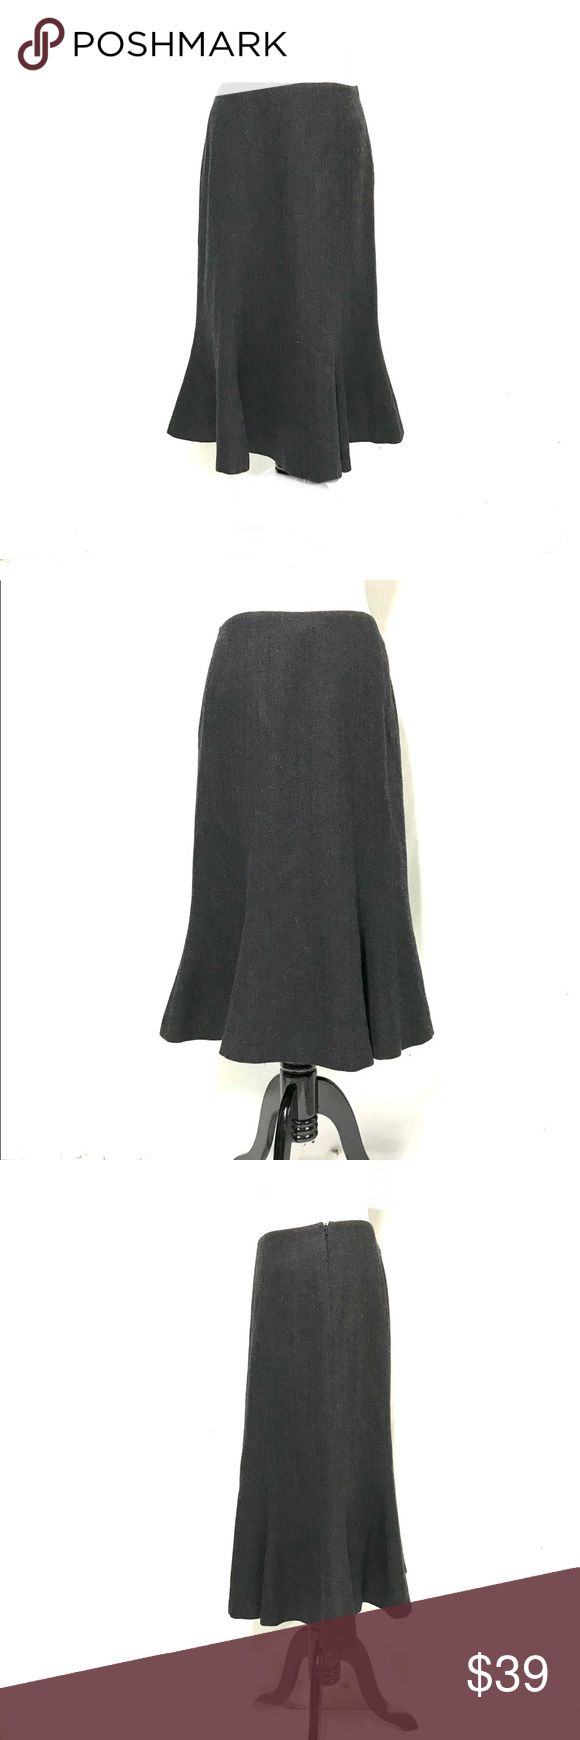 Ralph Lauren wool longer skirt. Love this shape. Fitted at the hips with more room at the lower half. Very pretty fit and flare. This is fully lined, is in like new condition and is a bigger size 4. A must have piece for fans of Ralph Lauren. Lauren Ralph Lauren Skirts Midi